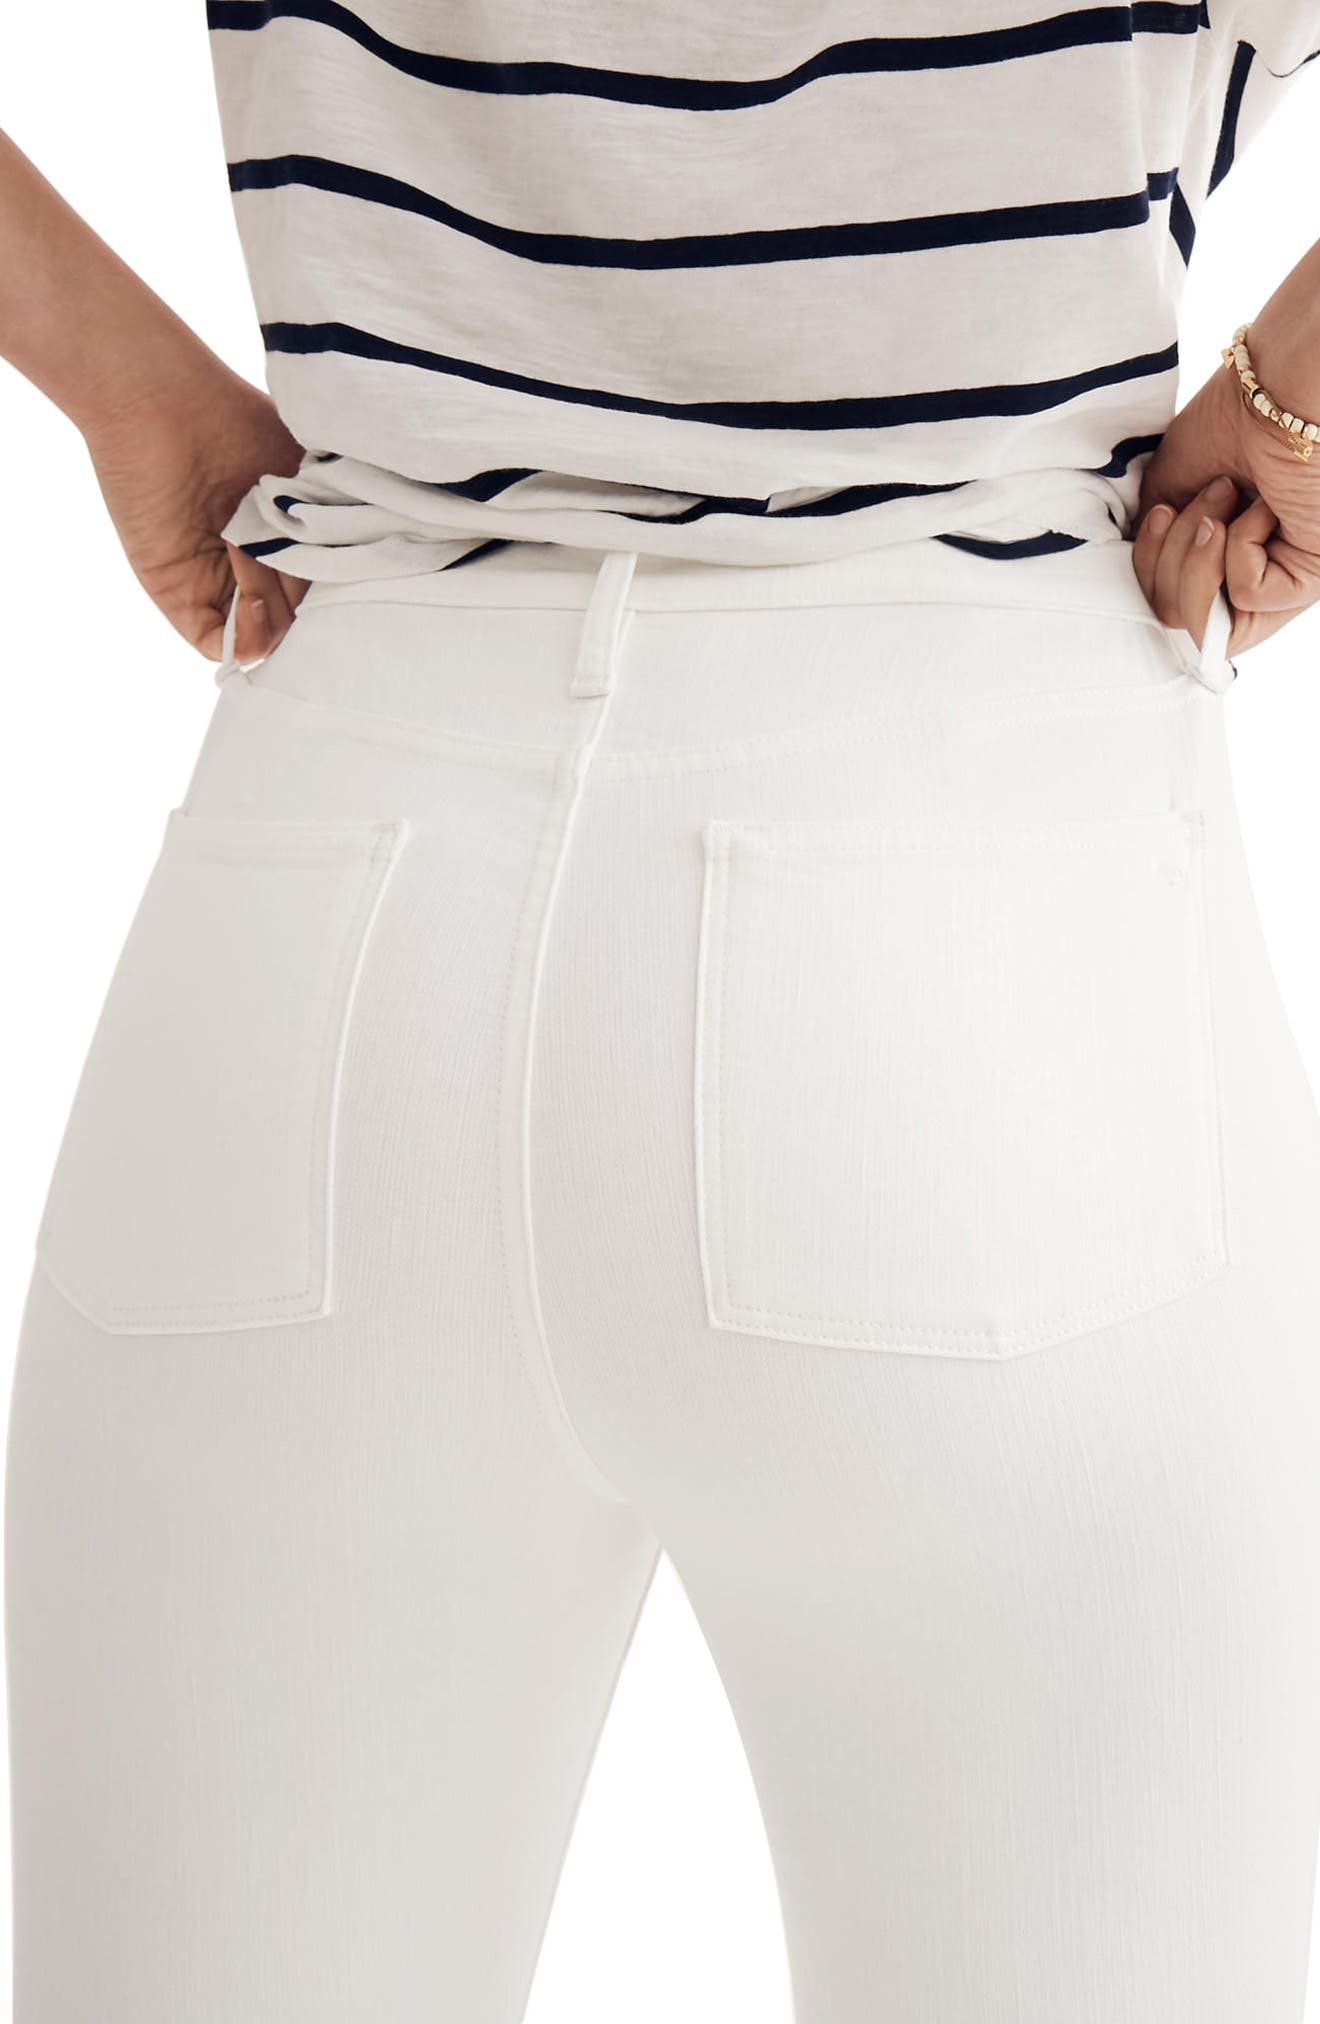 MADEWELL, 9-Inch High Waist Skinny Jeans, Alternate thumbnail 5, color, PURE WHITE